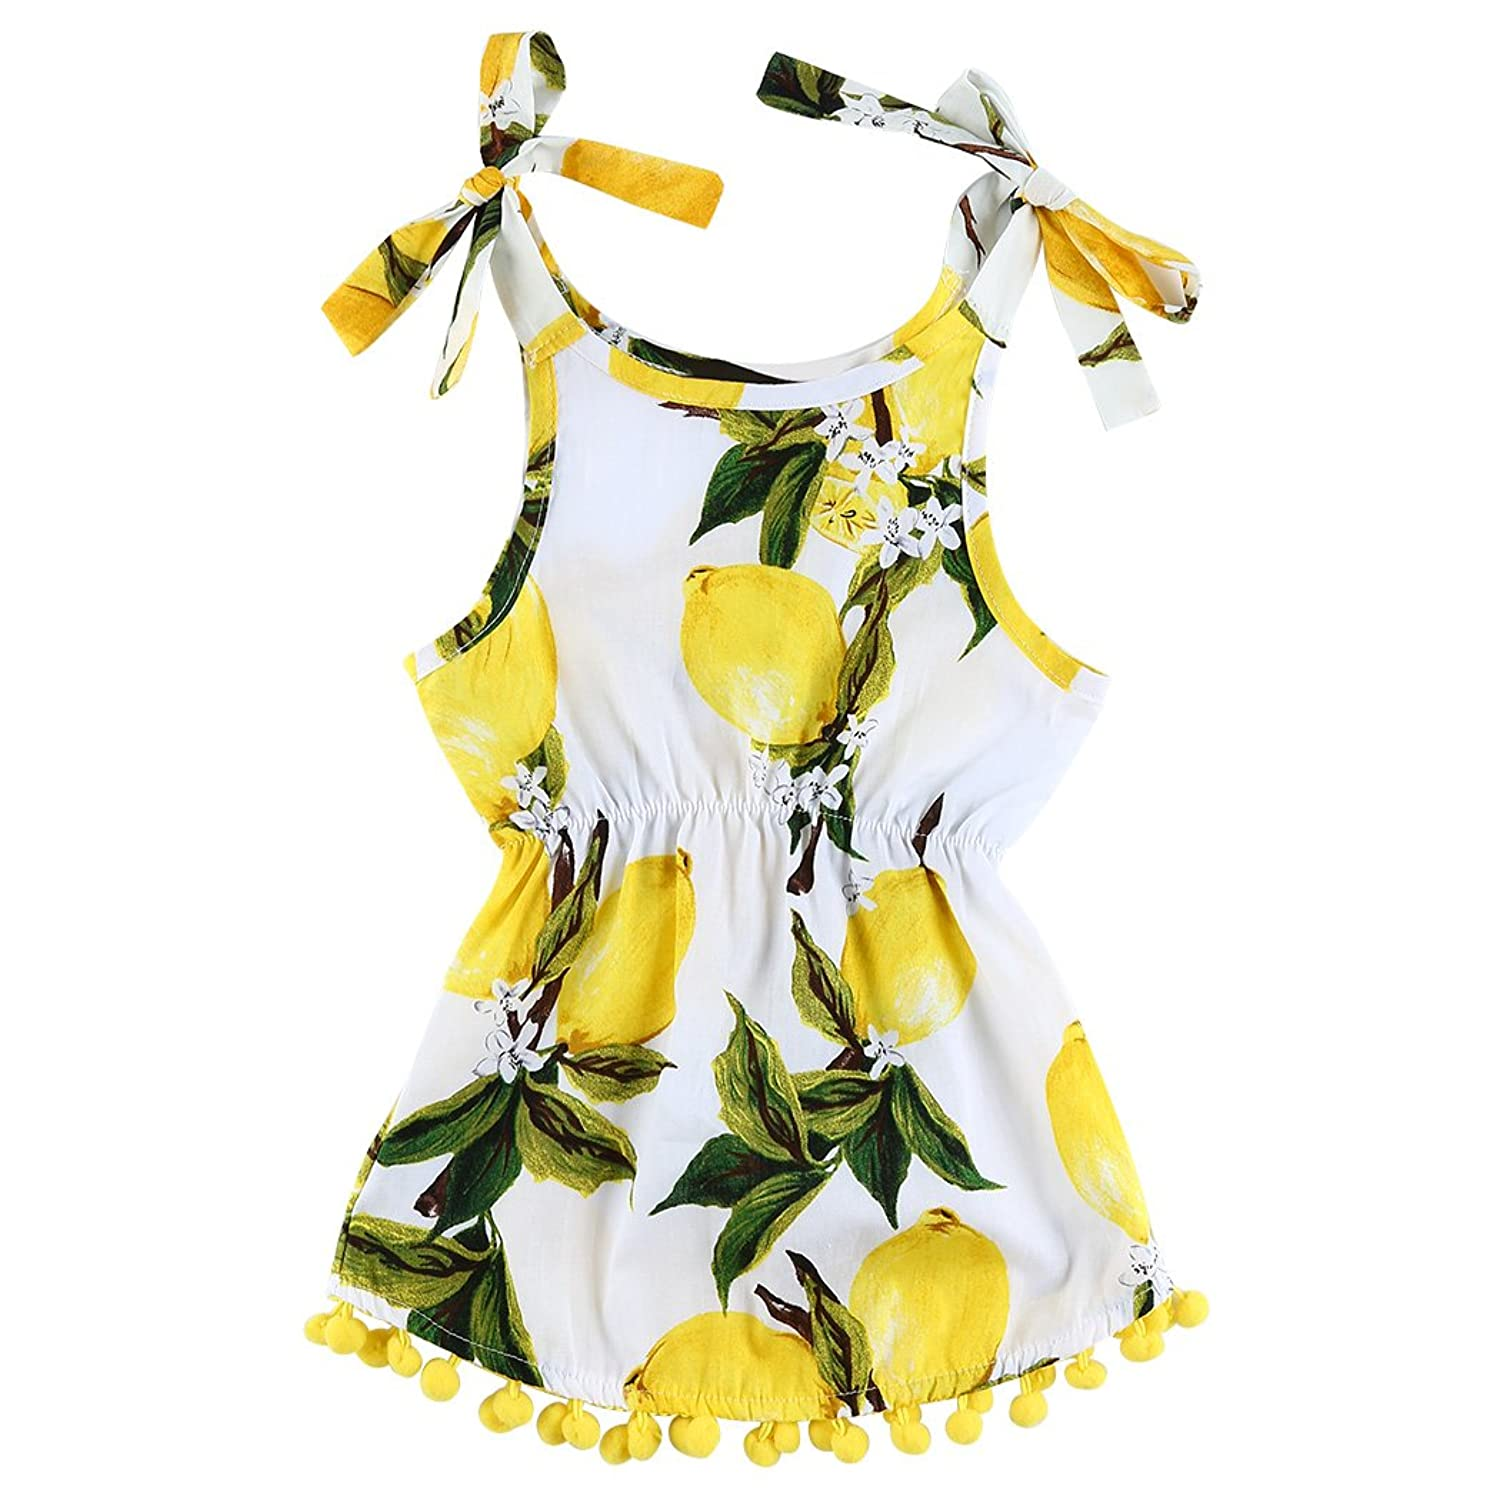 815d2ebffd Fashion baby toddler infant girls summer lemon fruit floral printed  sleeveless sundress. Self tie bowknot straps on shoulder